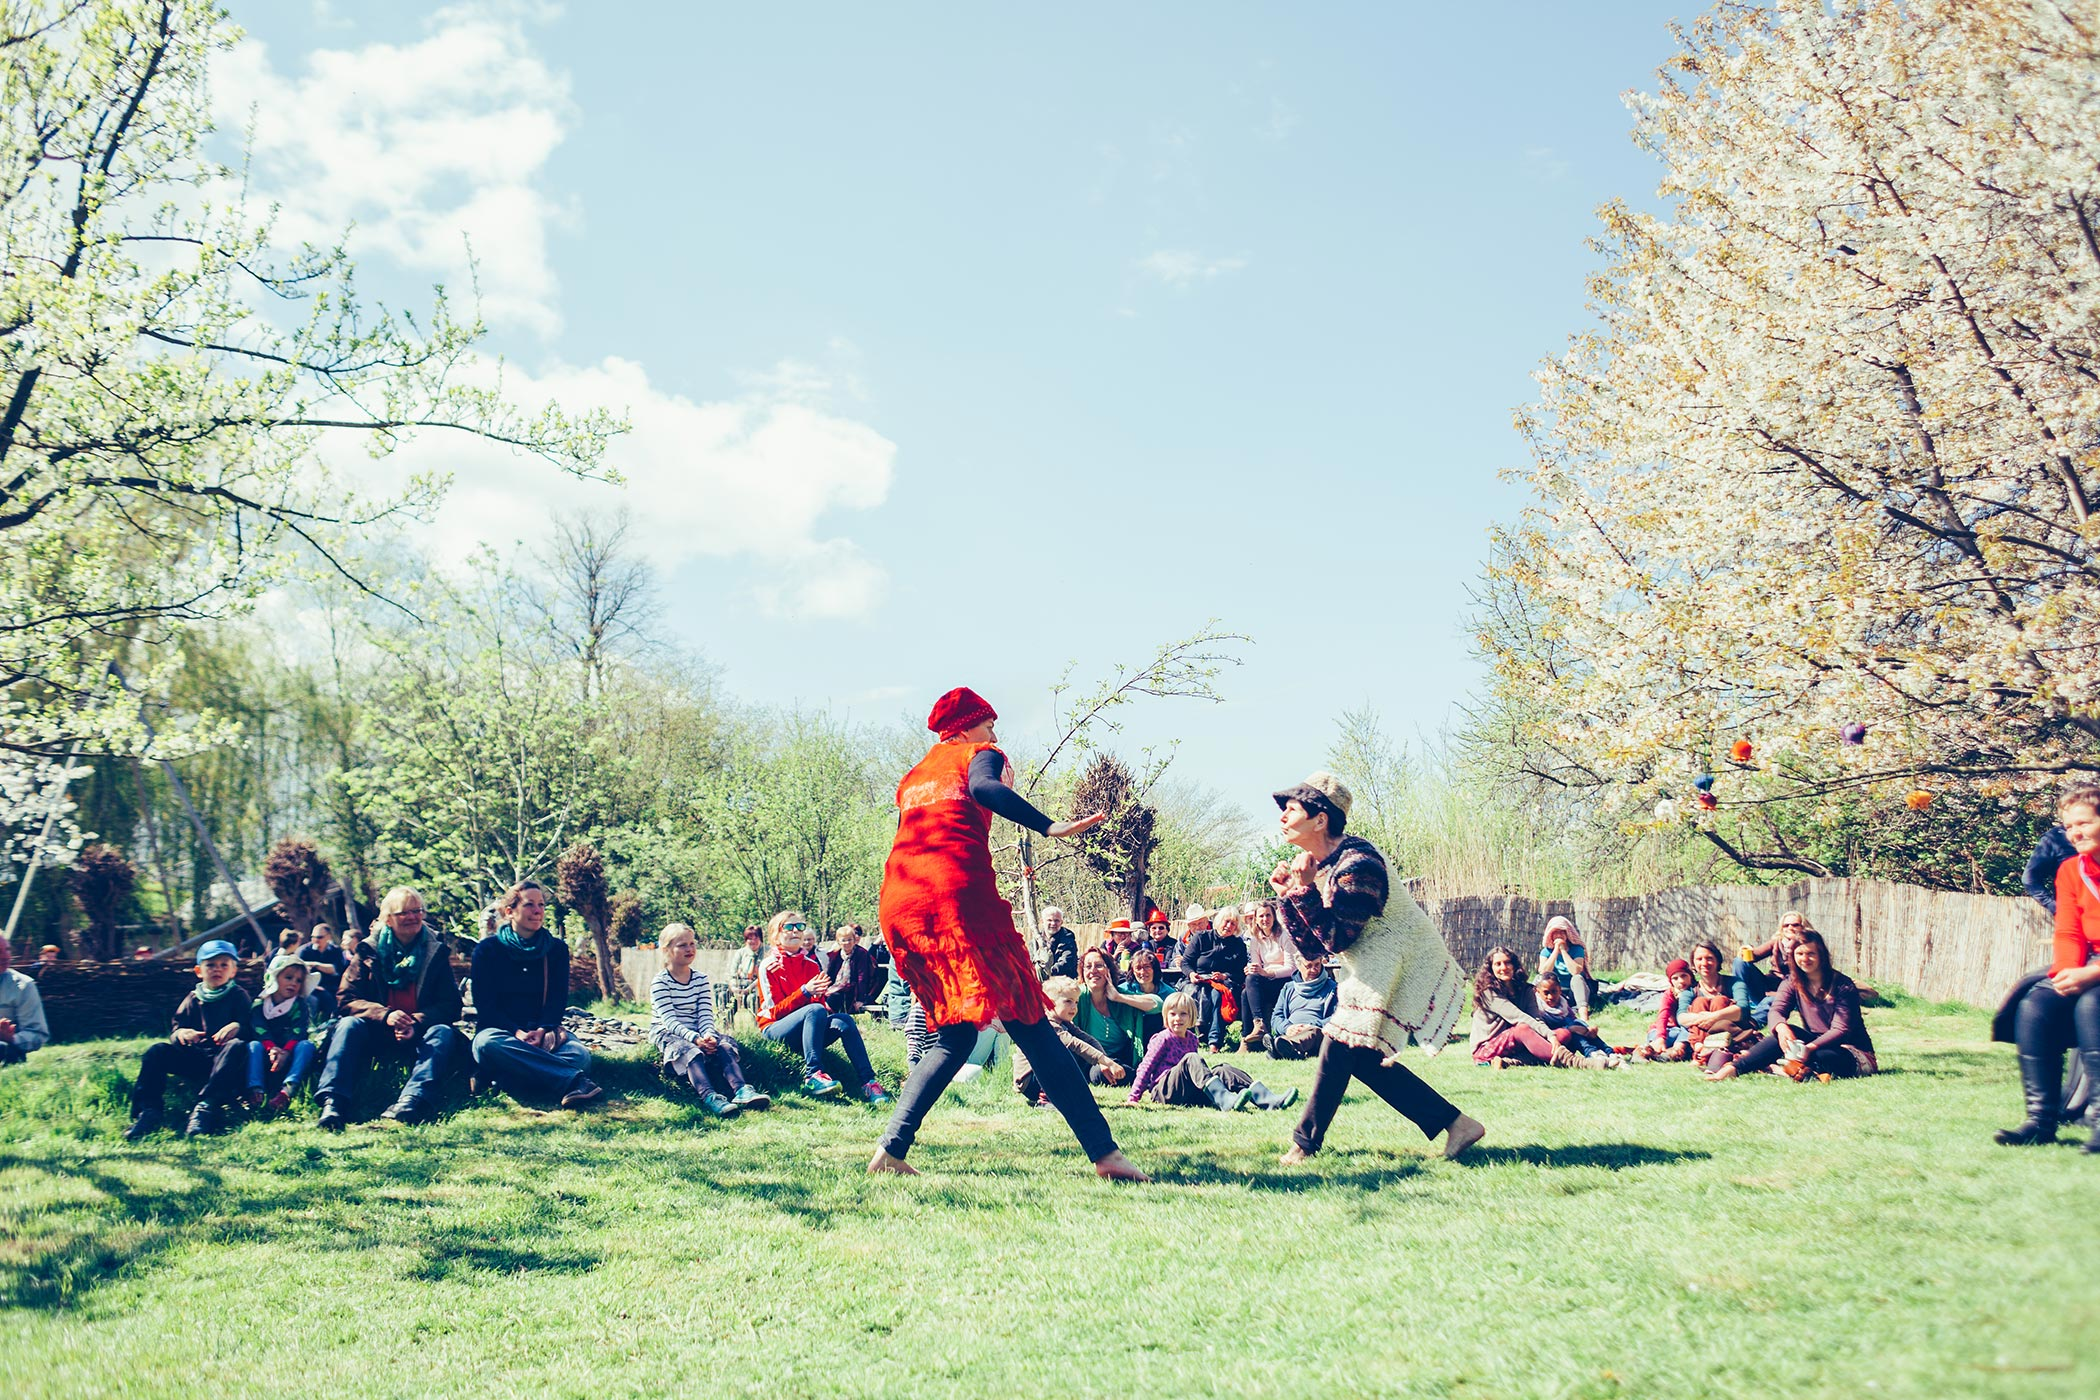 1st of may festival at balticsea, germany